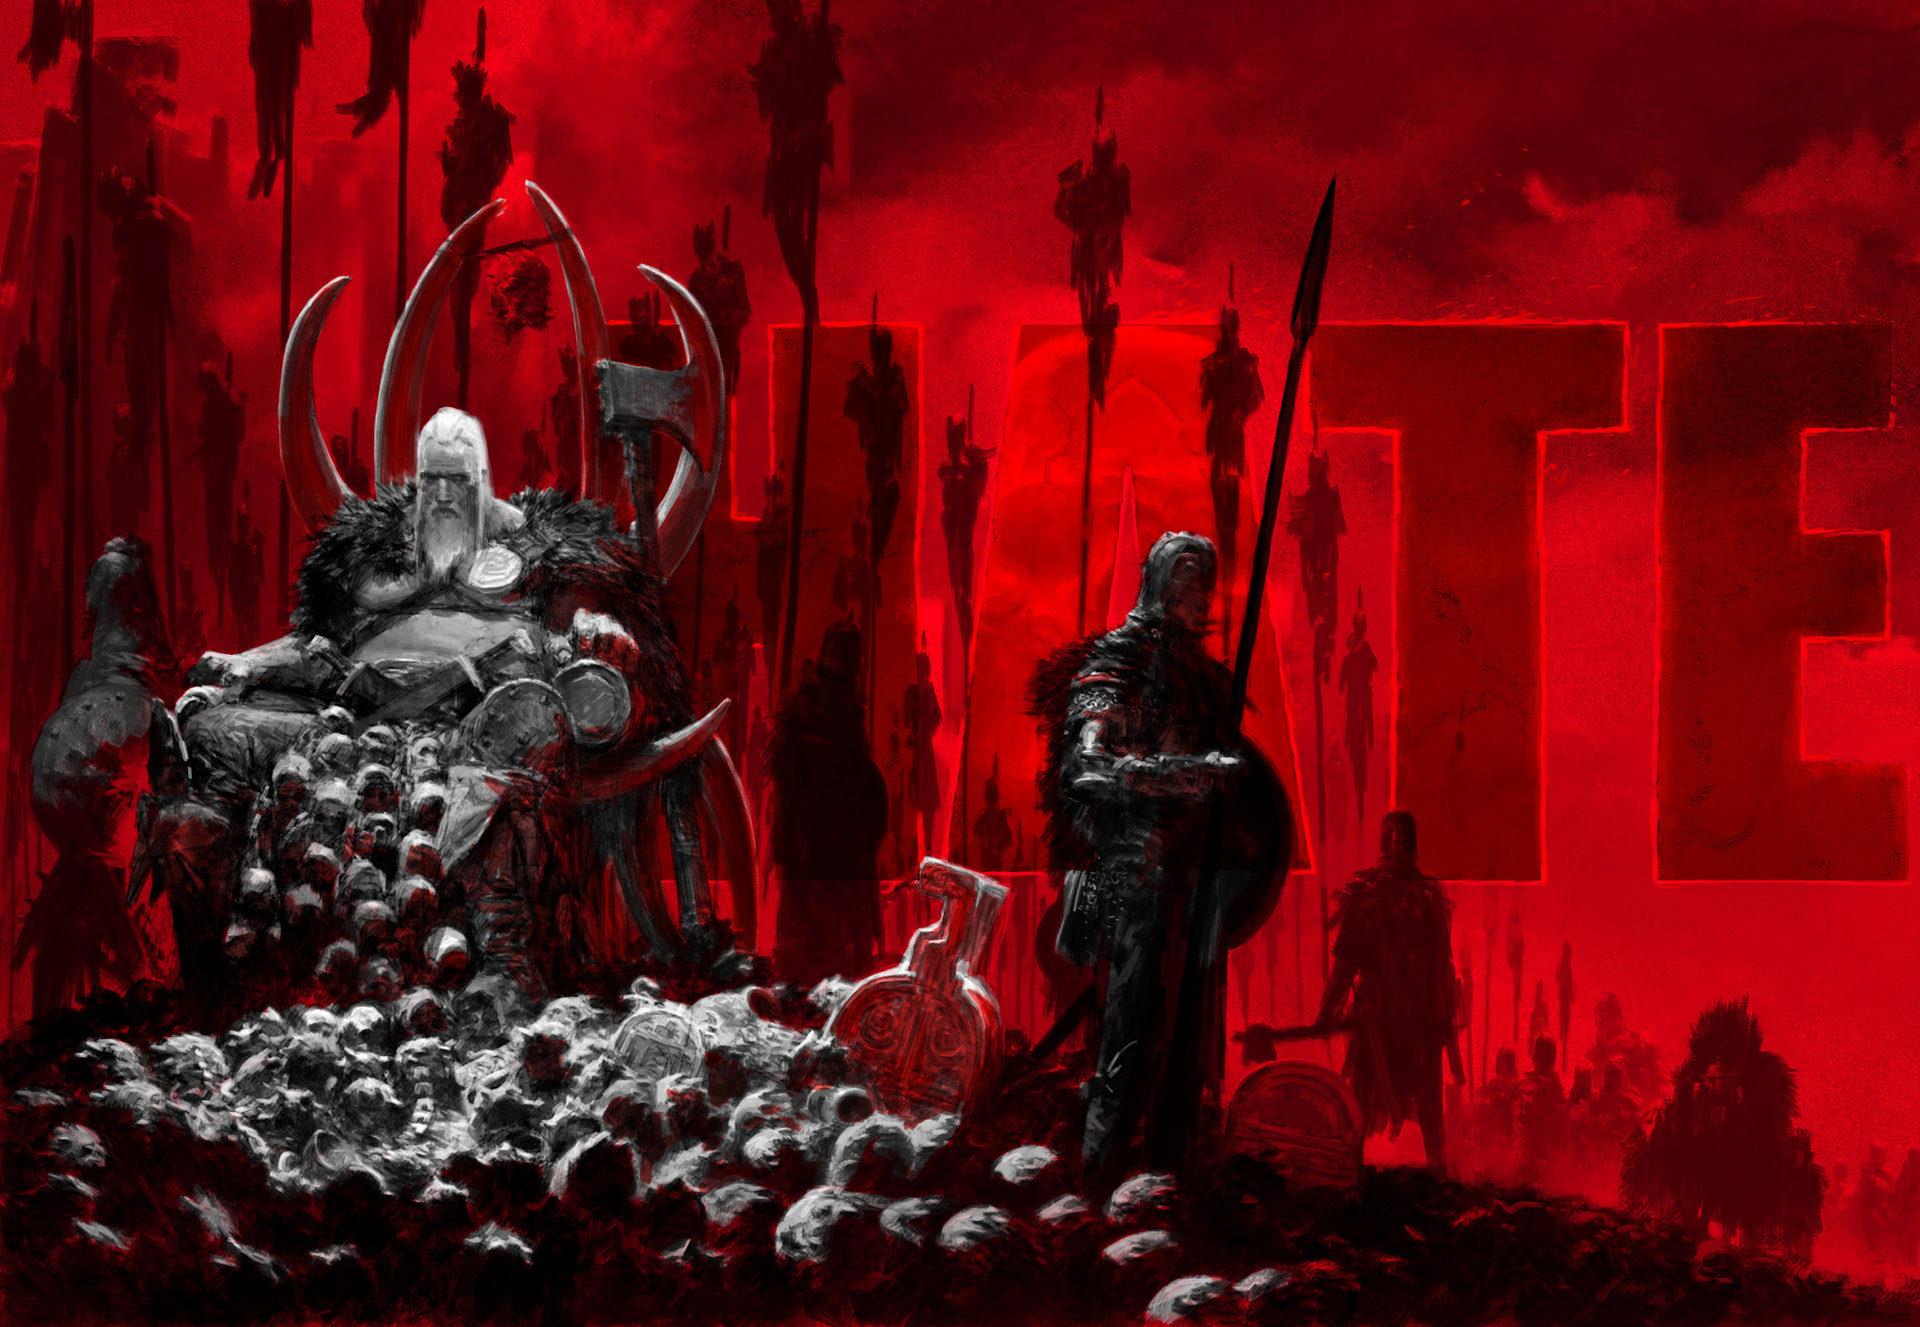 Artstation - Promo Art 'chronicles Of Hate' Graphic Adrian Smith